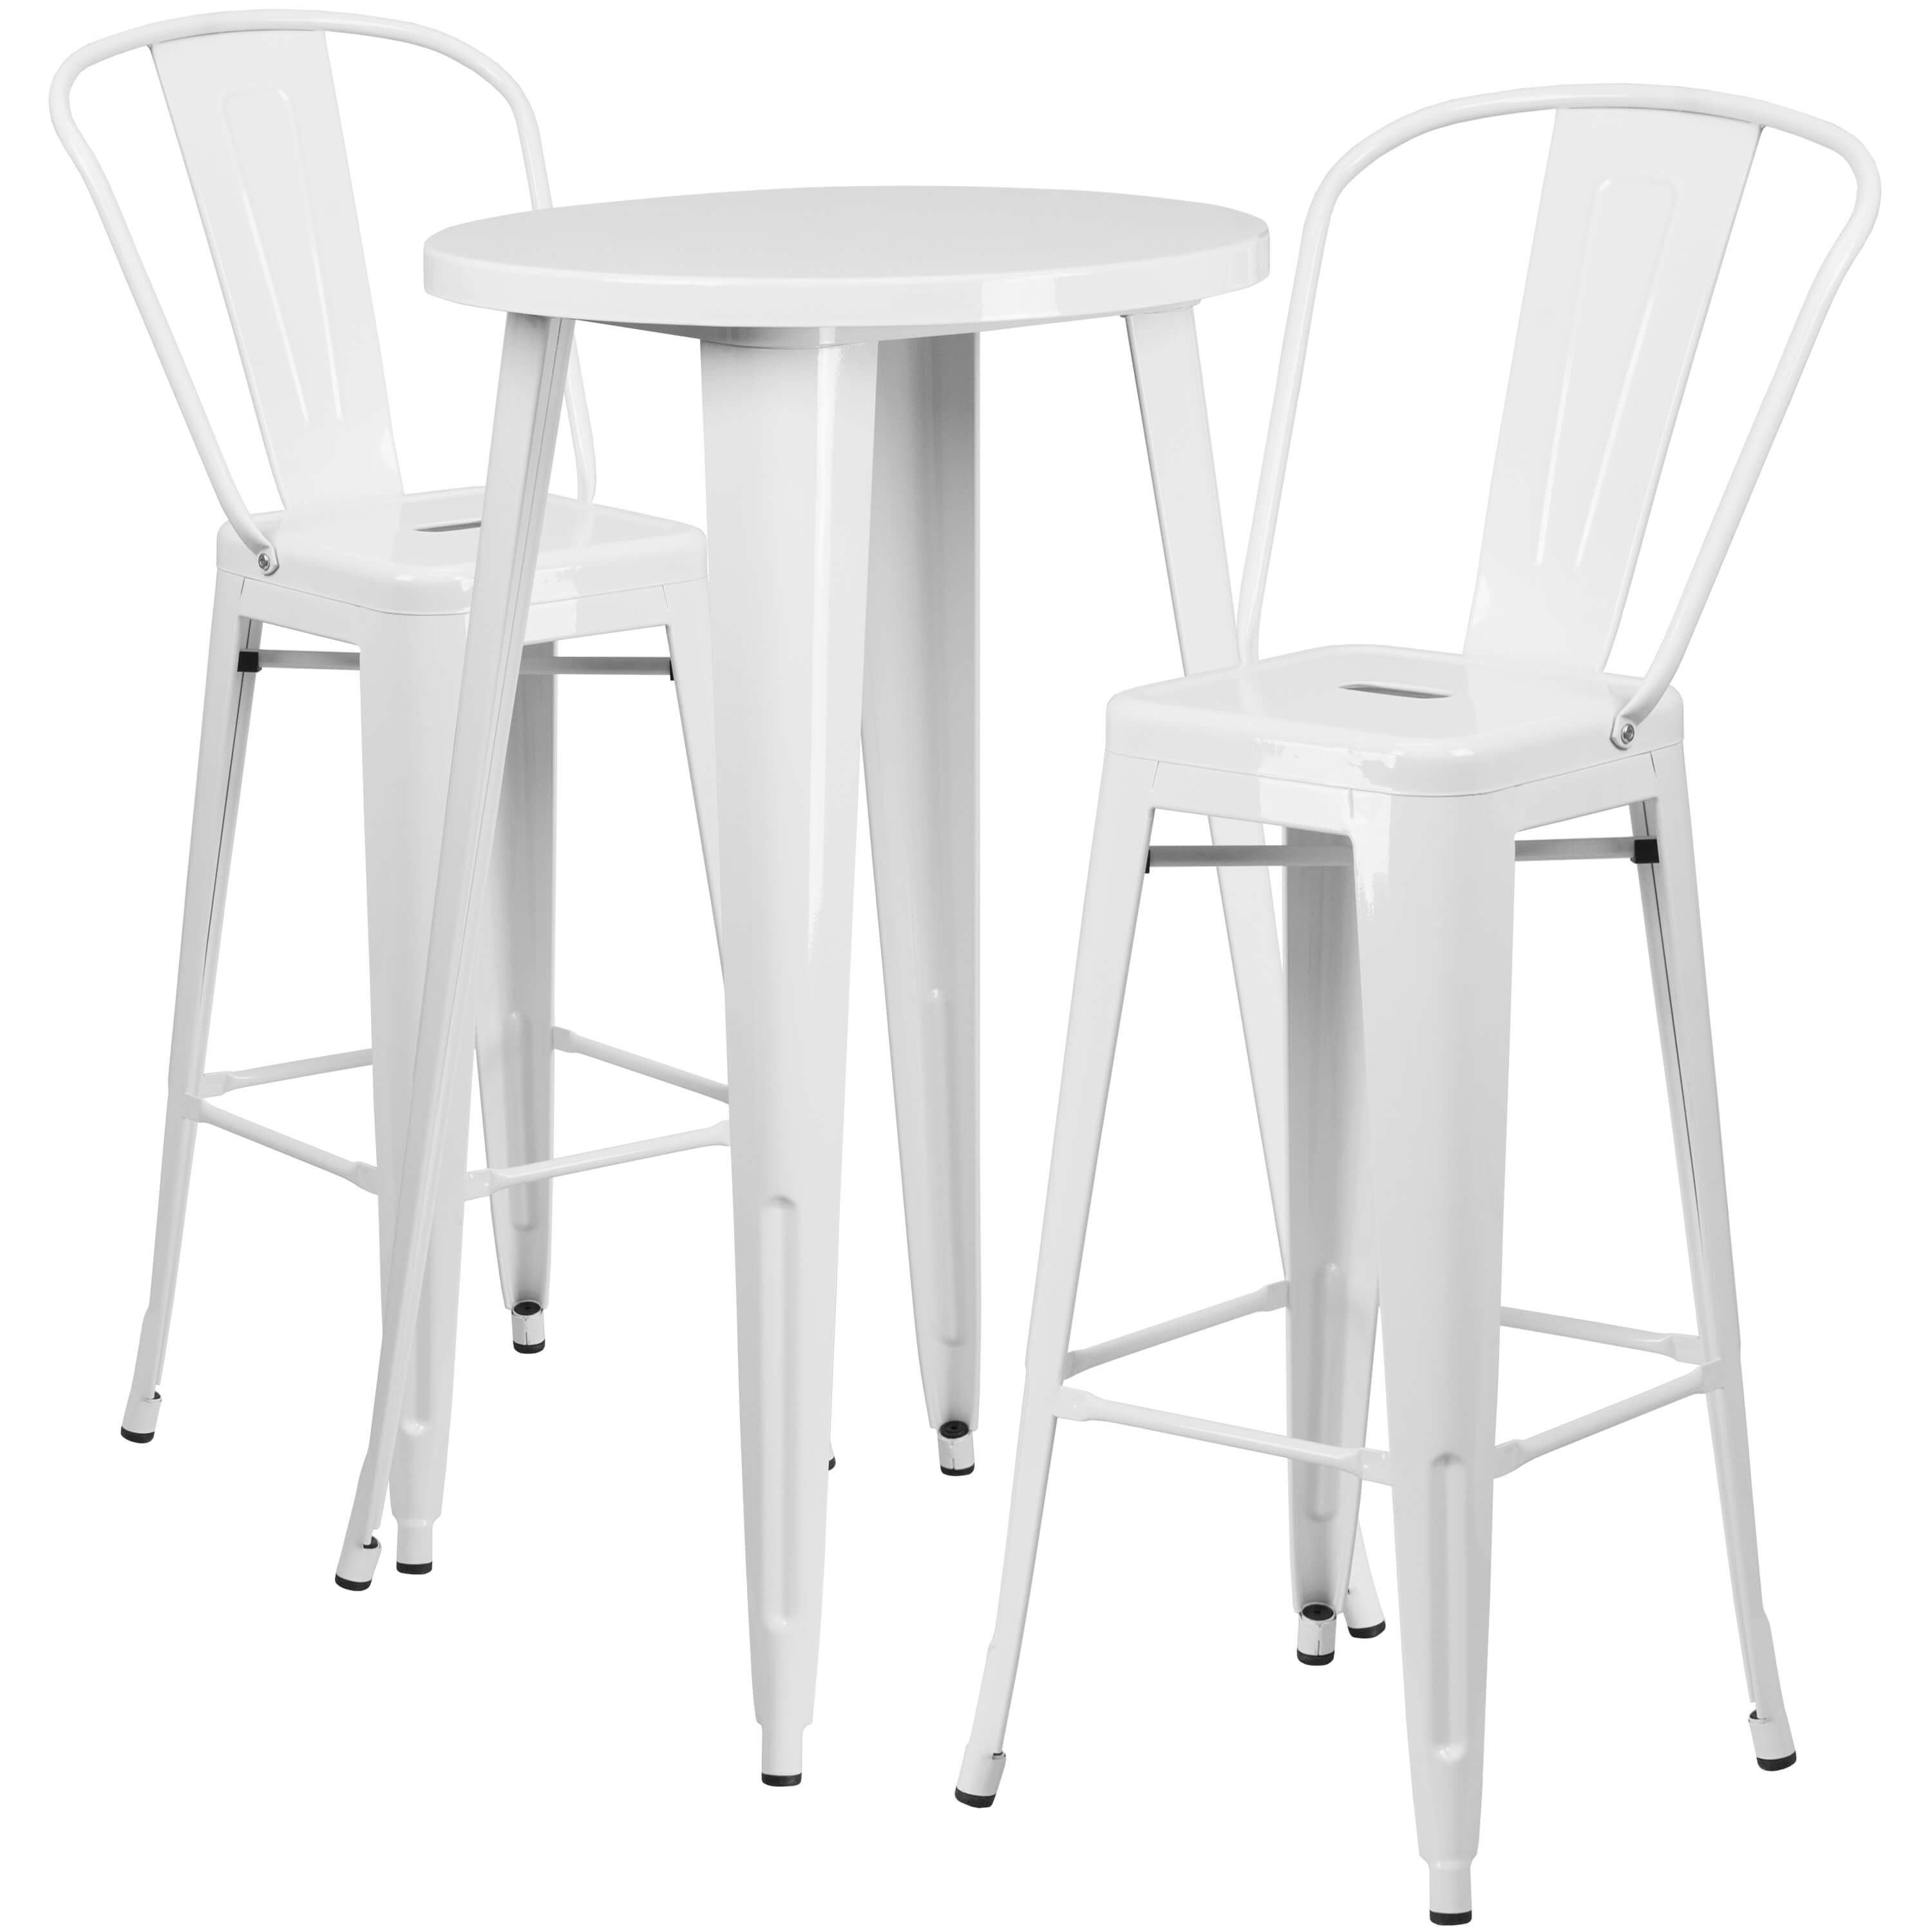 High top table set CUB CH 51080BH 2 30CAFE WH GG FLA